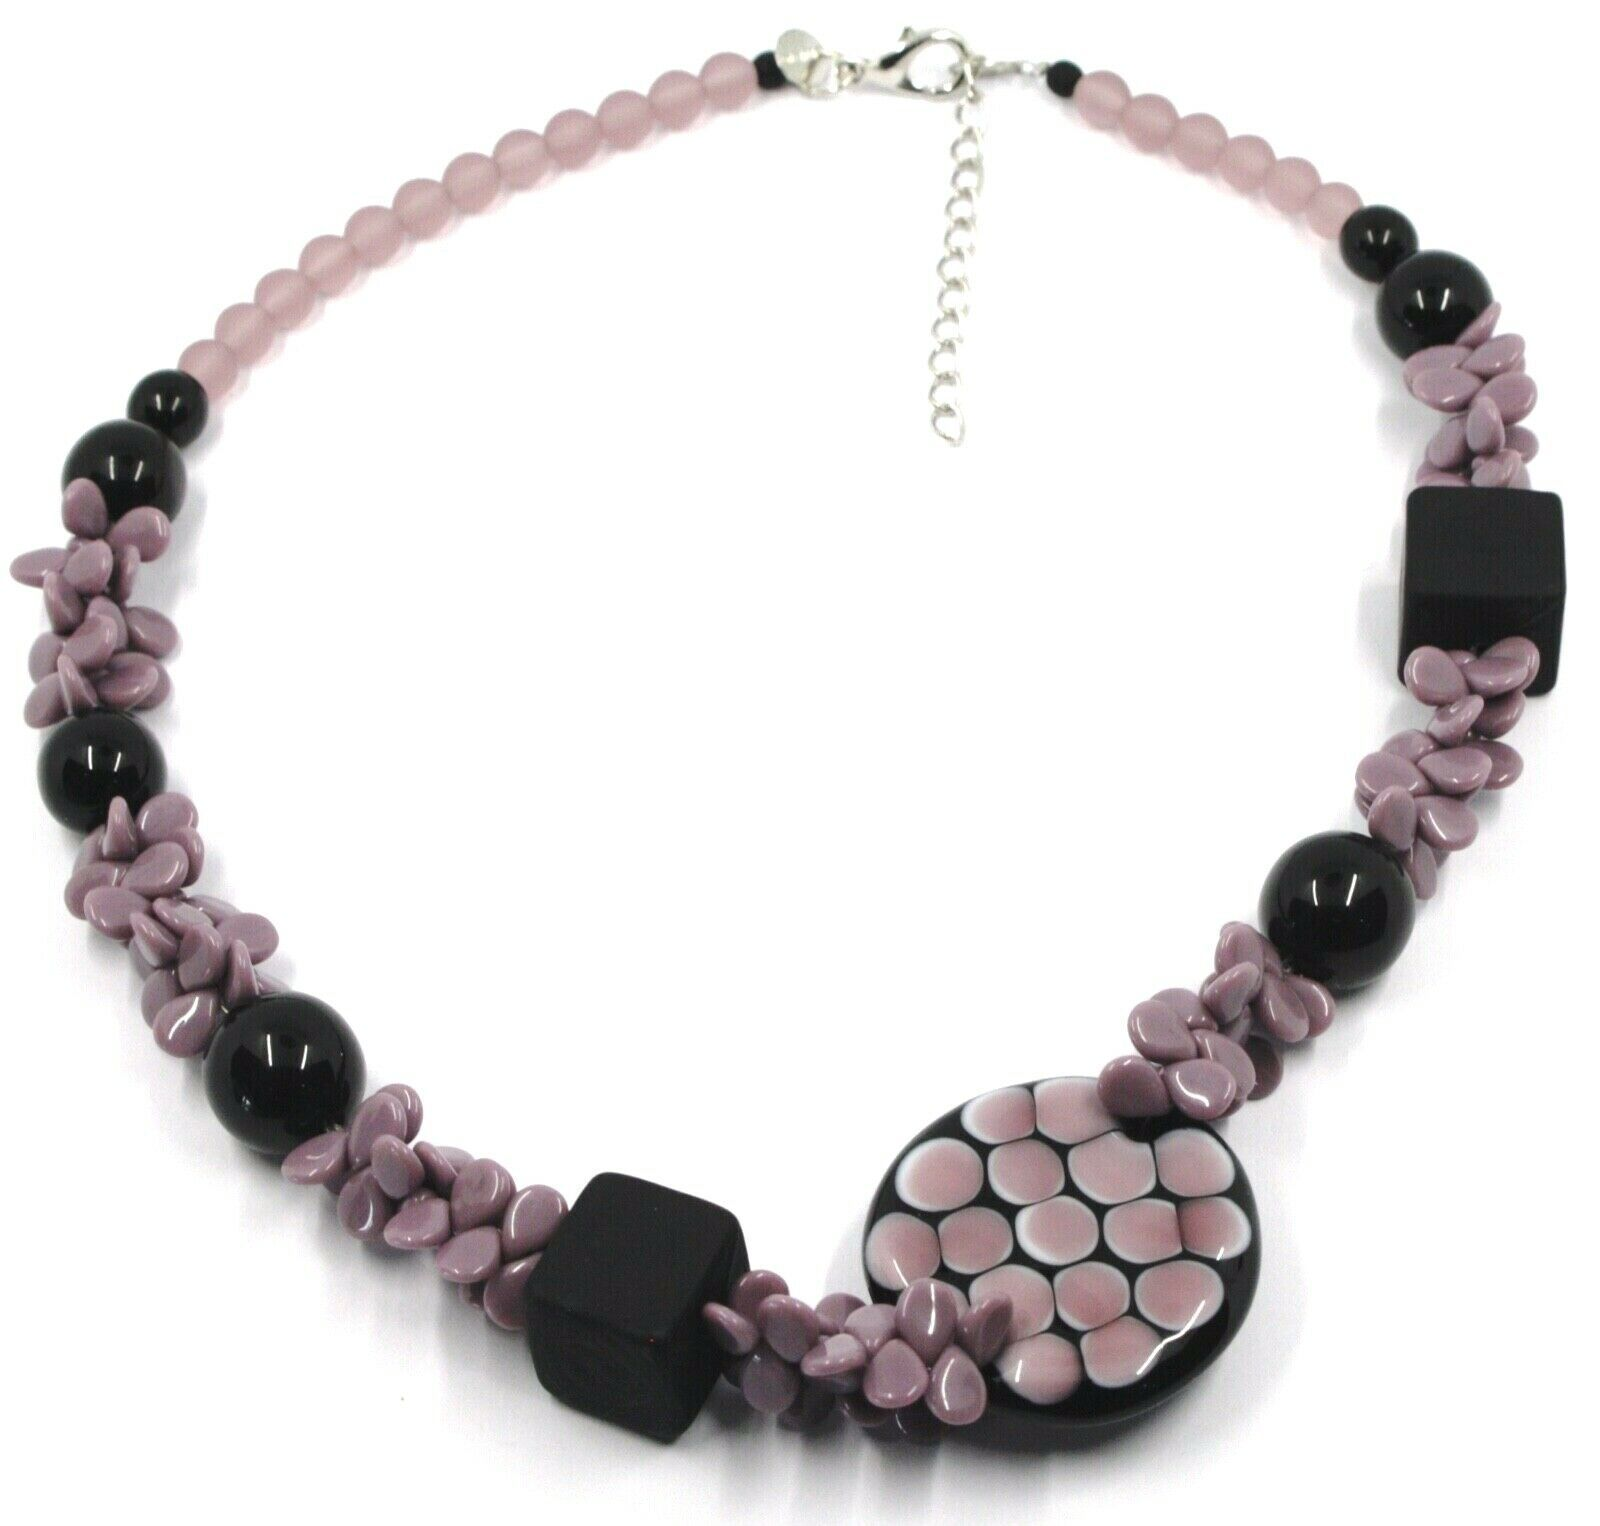 NECKLACE PURPLE BLACK MURANO GLASS BUNCH OF PETAL DROPS SQUARE DISC ITALY MADE